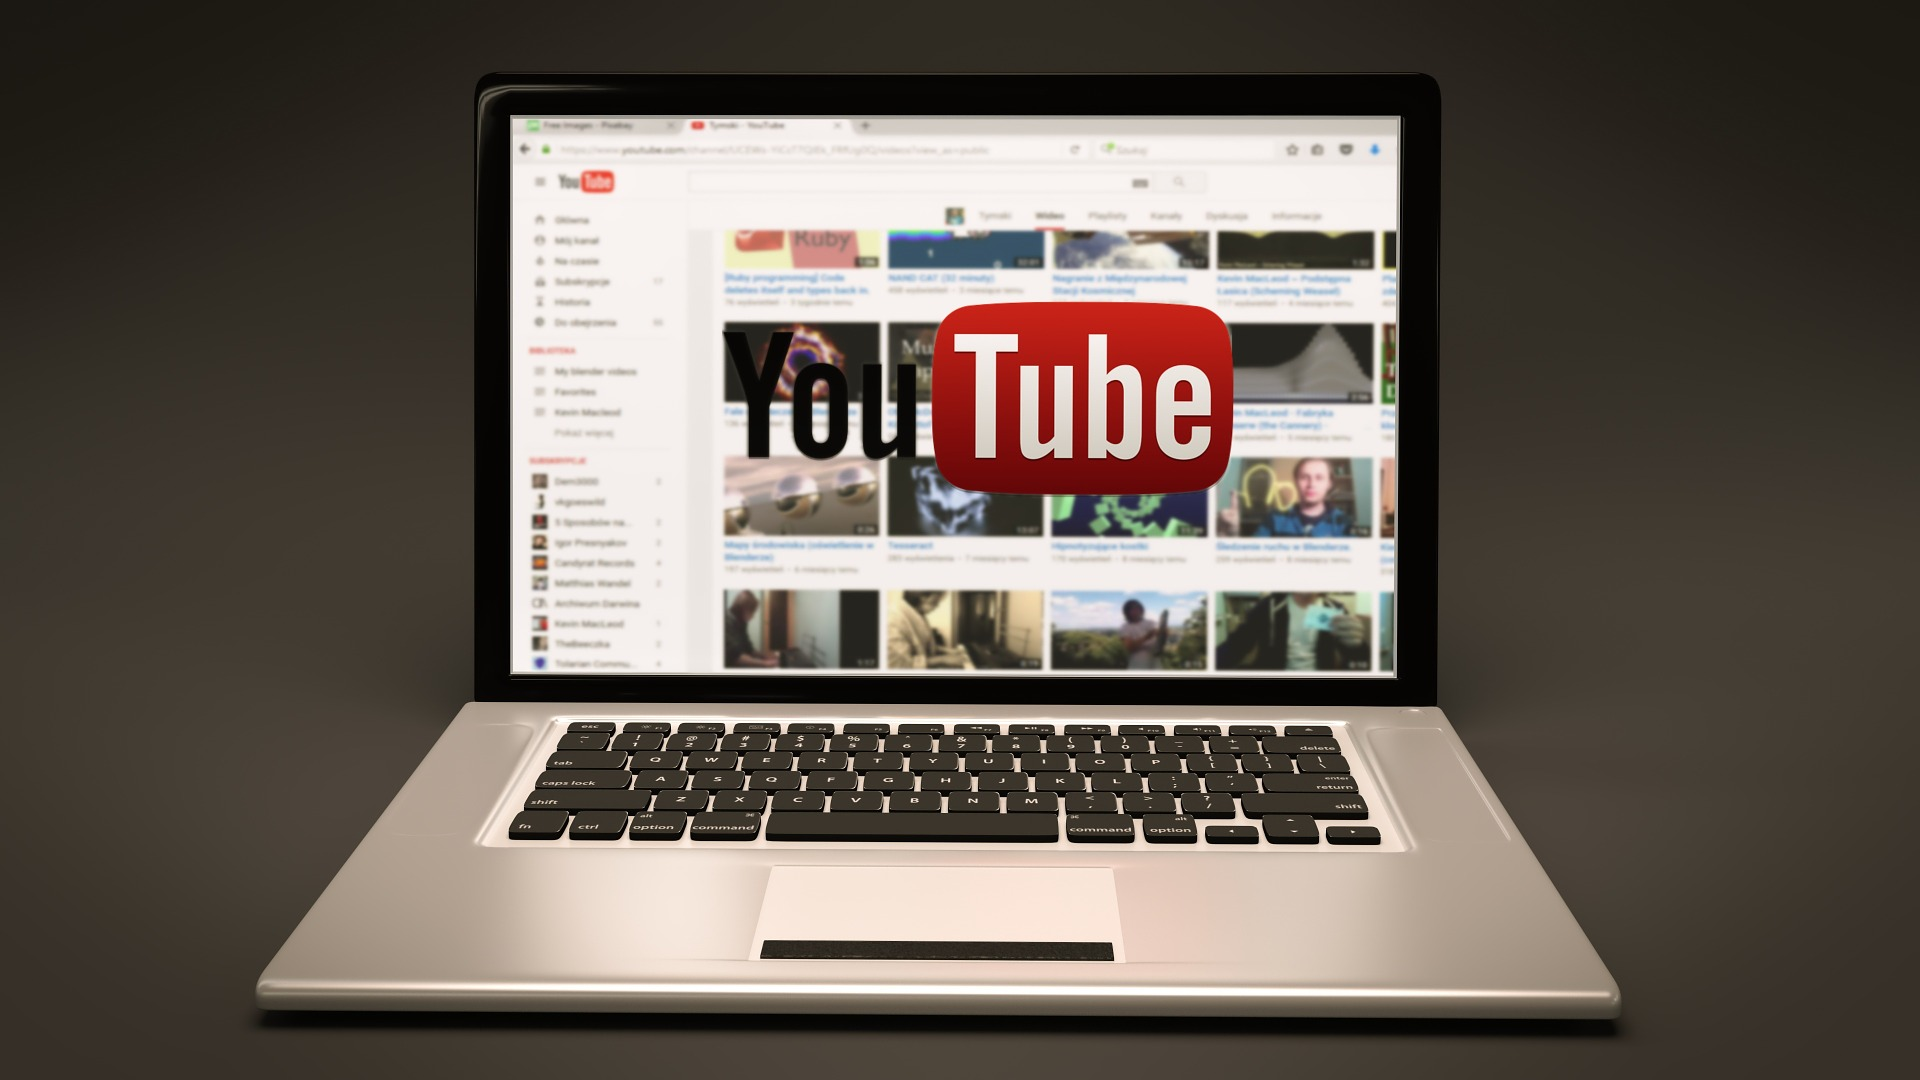 How To Download Free Beats & Instrumentals From Youtube (Legally)